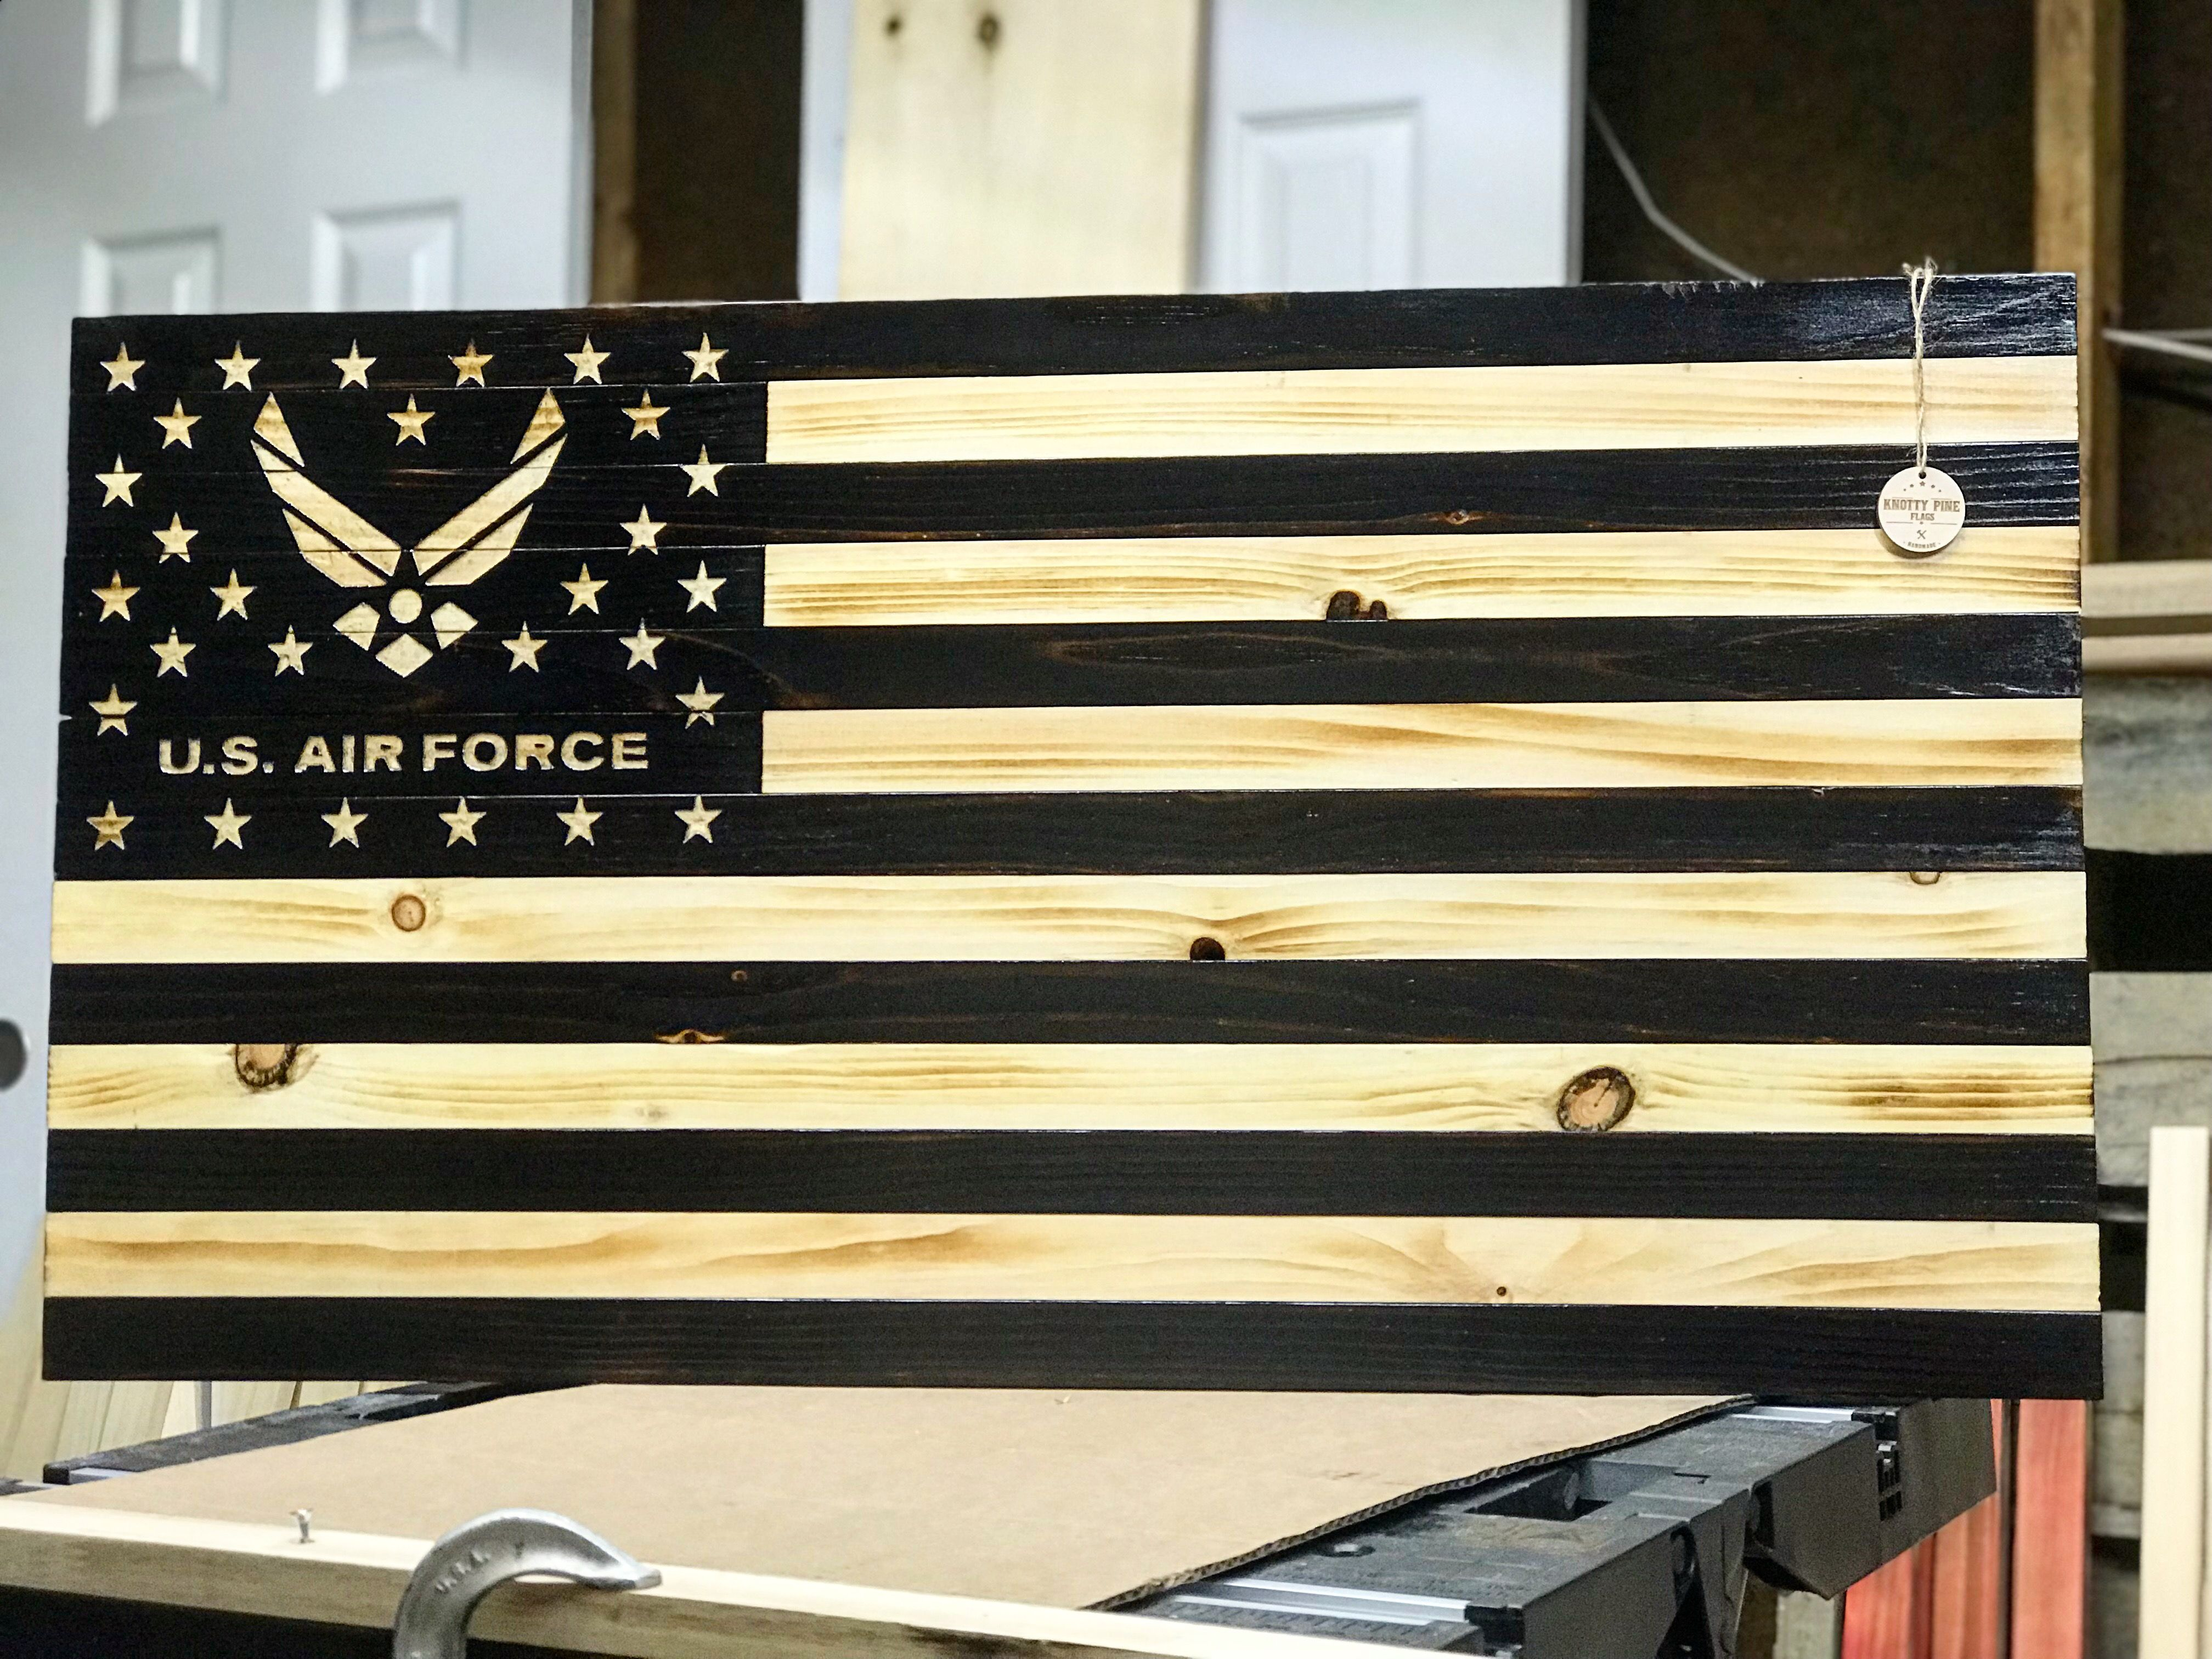 Pin by Knotty Pine Flags on Wood American Flag Art | Pinterest ...